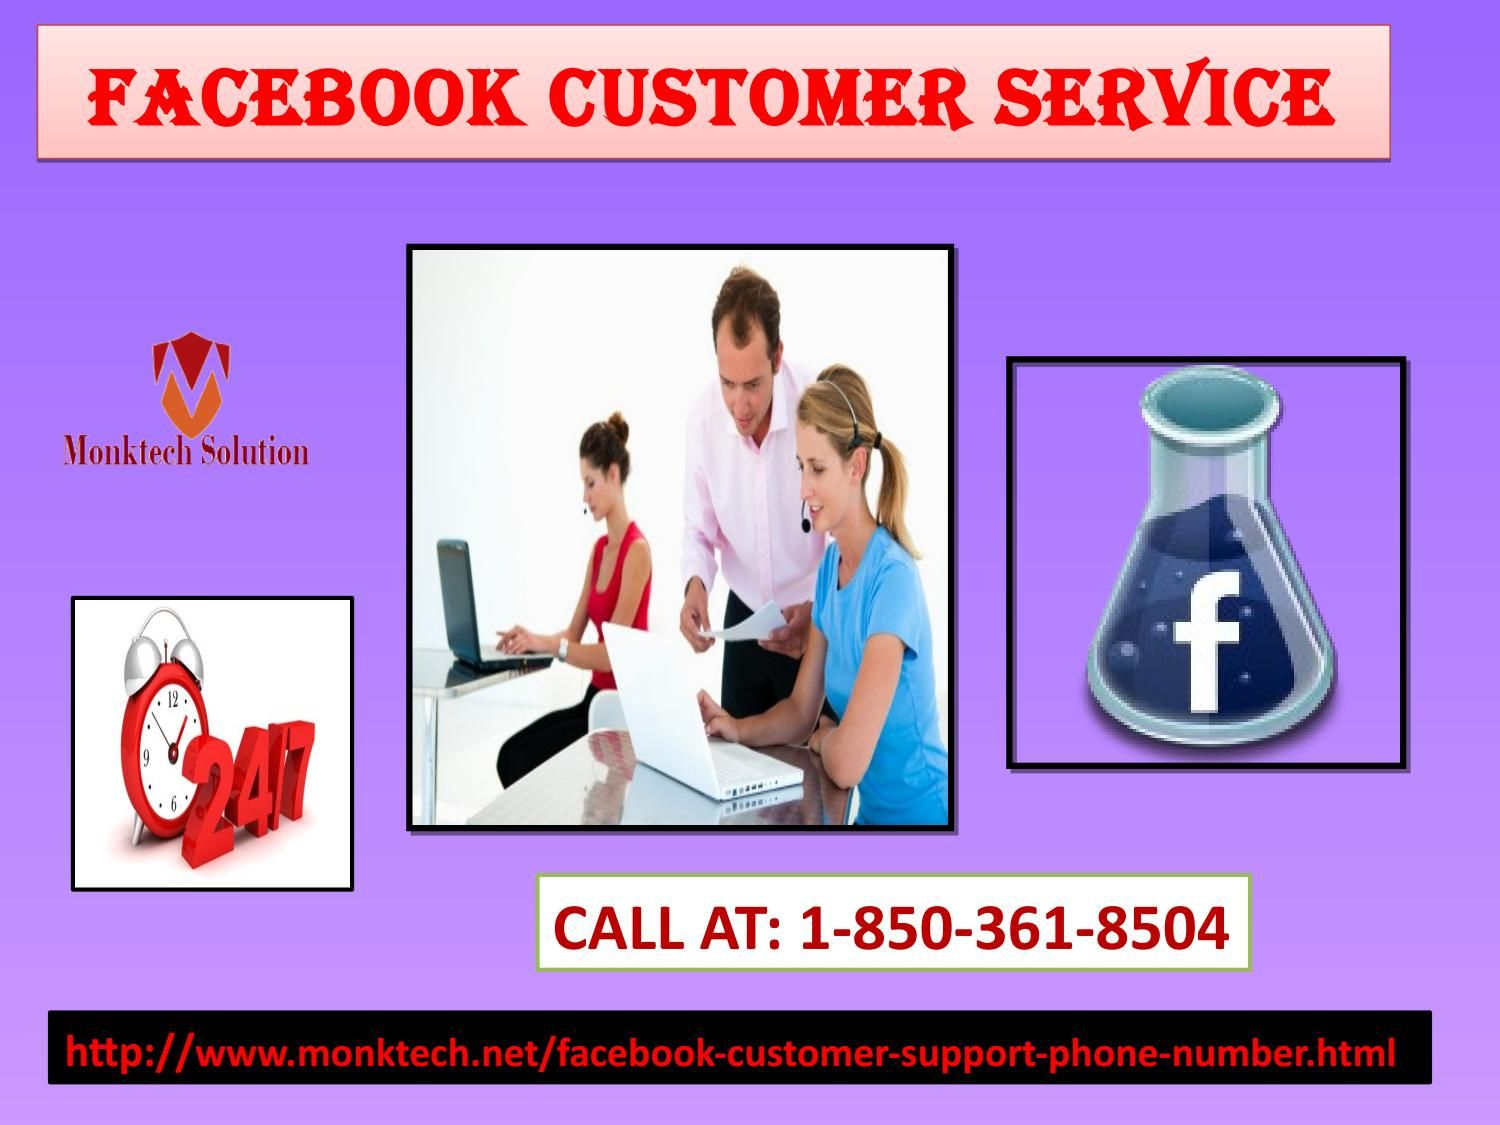 Dial Our Facebook Customer Service for Any Technical Issue 1-850-361